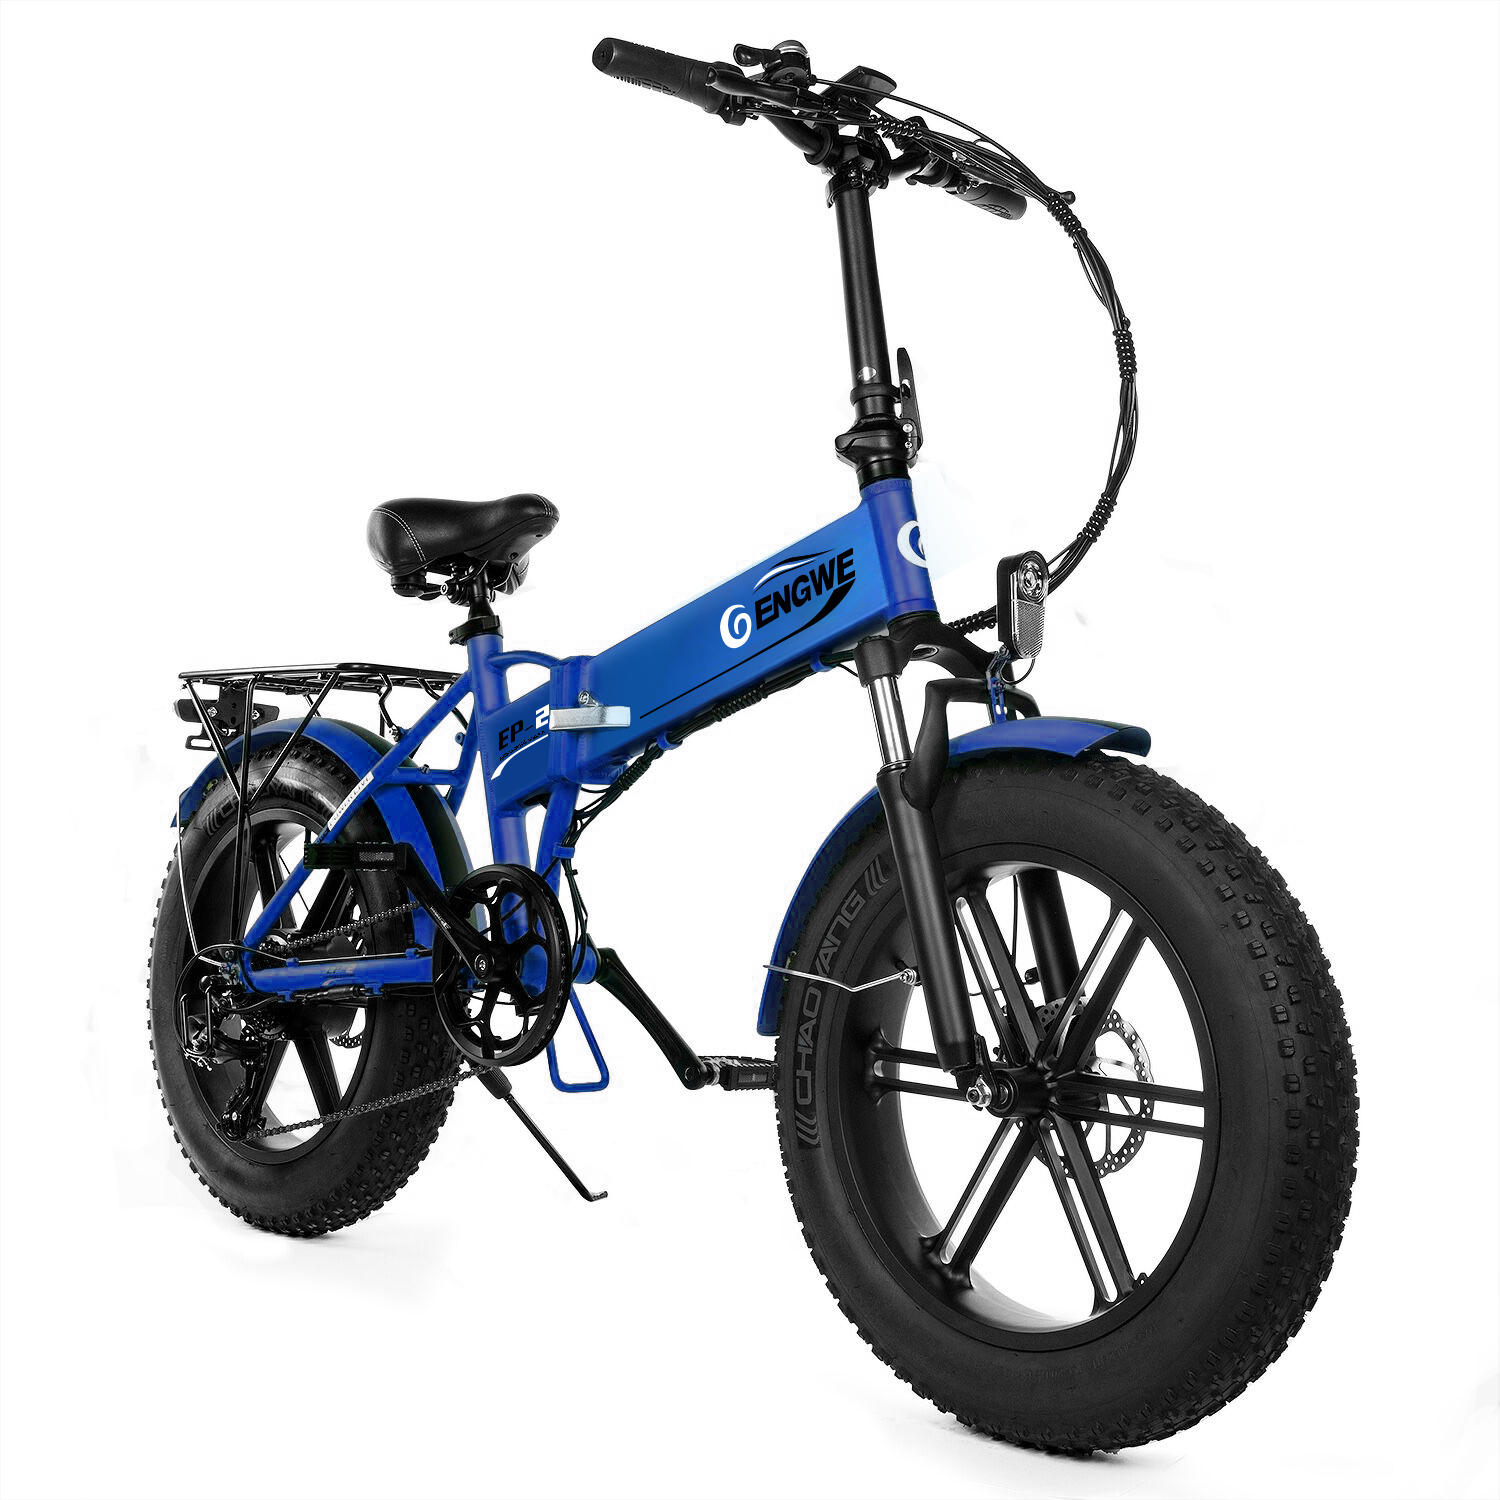 ENGWE EP 2 500W Folding Fat Tire Electric Bike with 48V 12.5Ah Lithium ion Battery